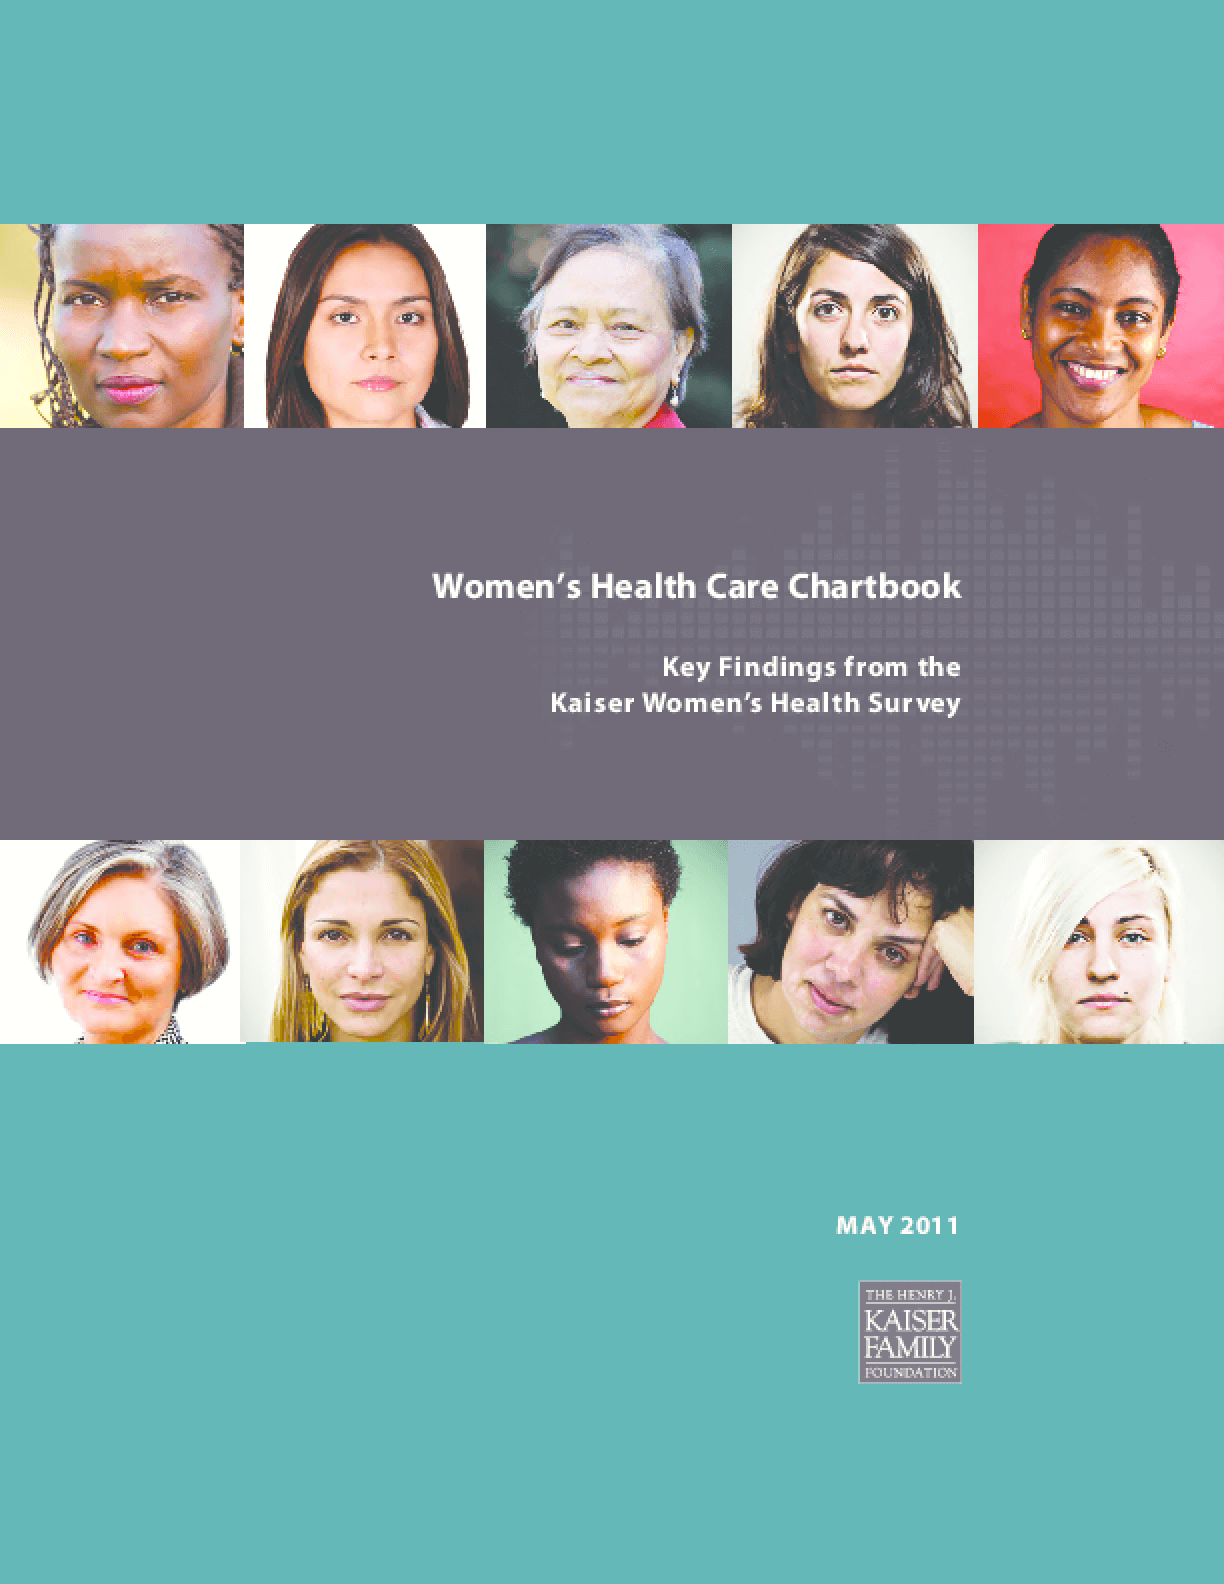 Women's Health Care Chartbook: Key Findings From the Kaiser Women's Health Survey